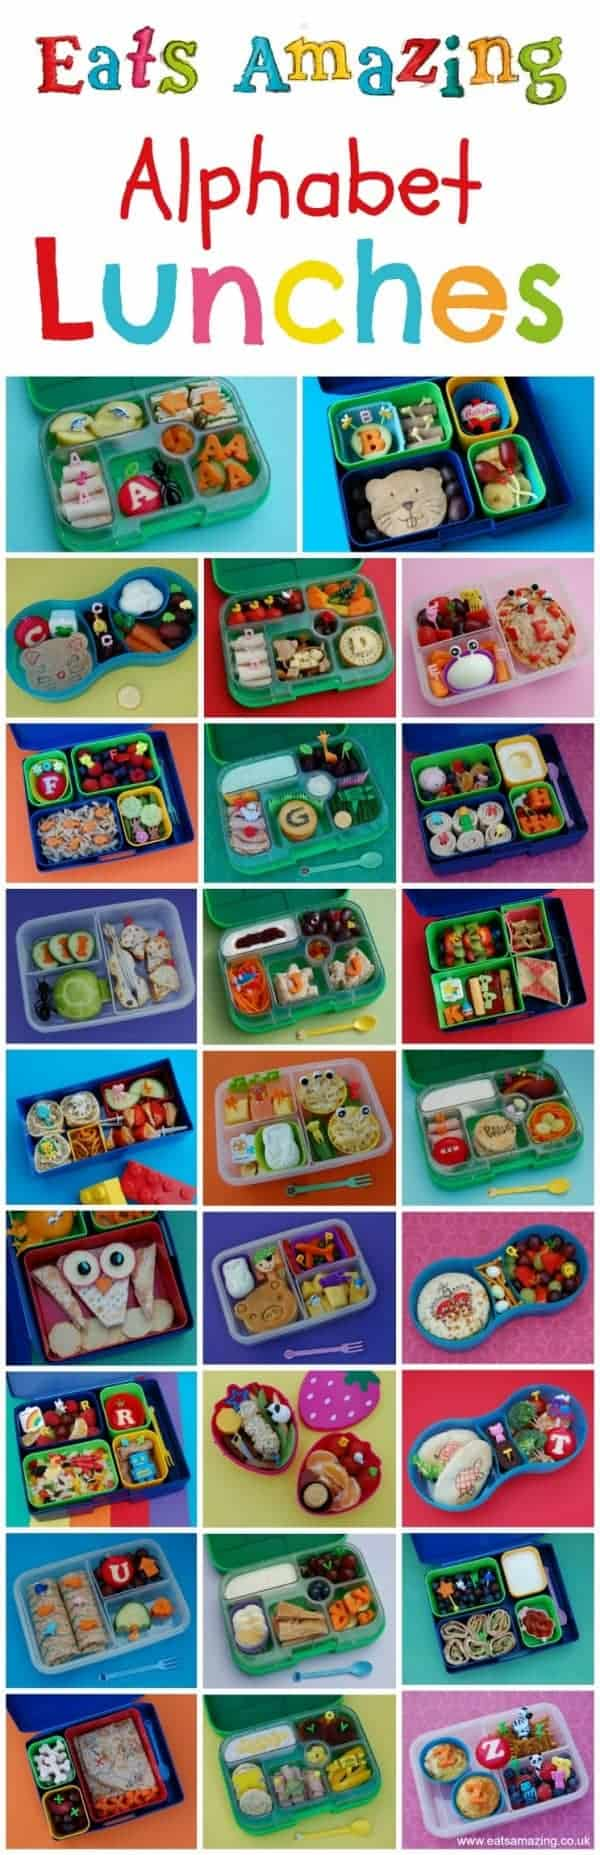 Healthy Food for Children - Complete Set of Alphabet Themed Bento School Lunch Ideas from Eats Amazing UK